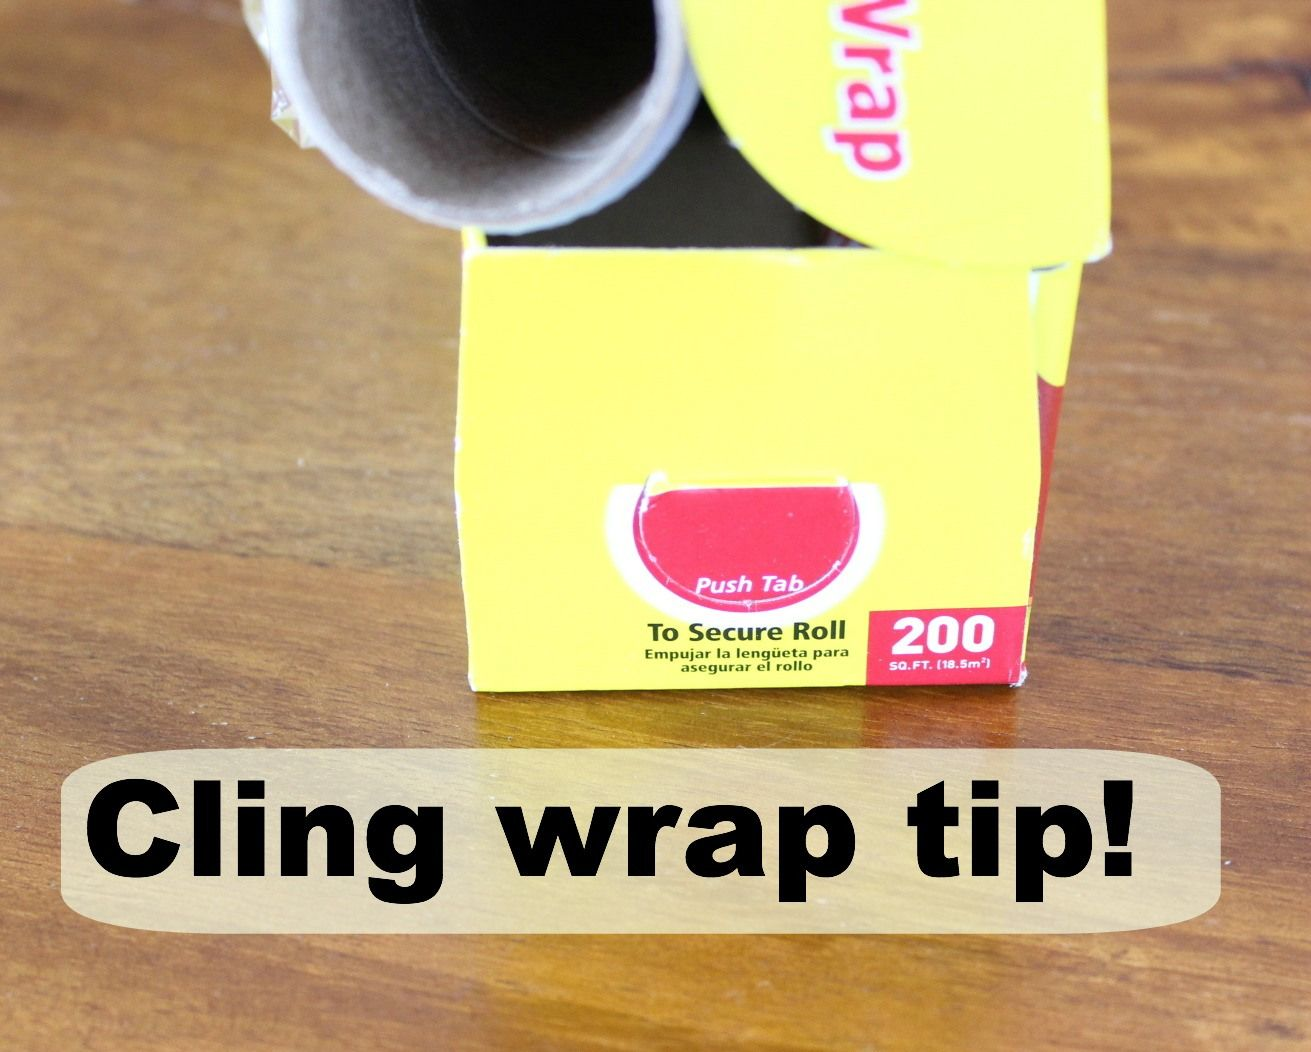 Cling wrap tip (and foil too!).